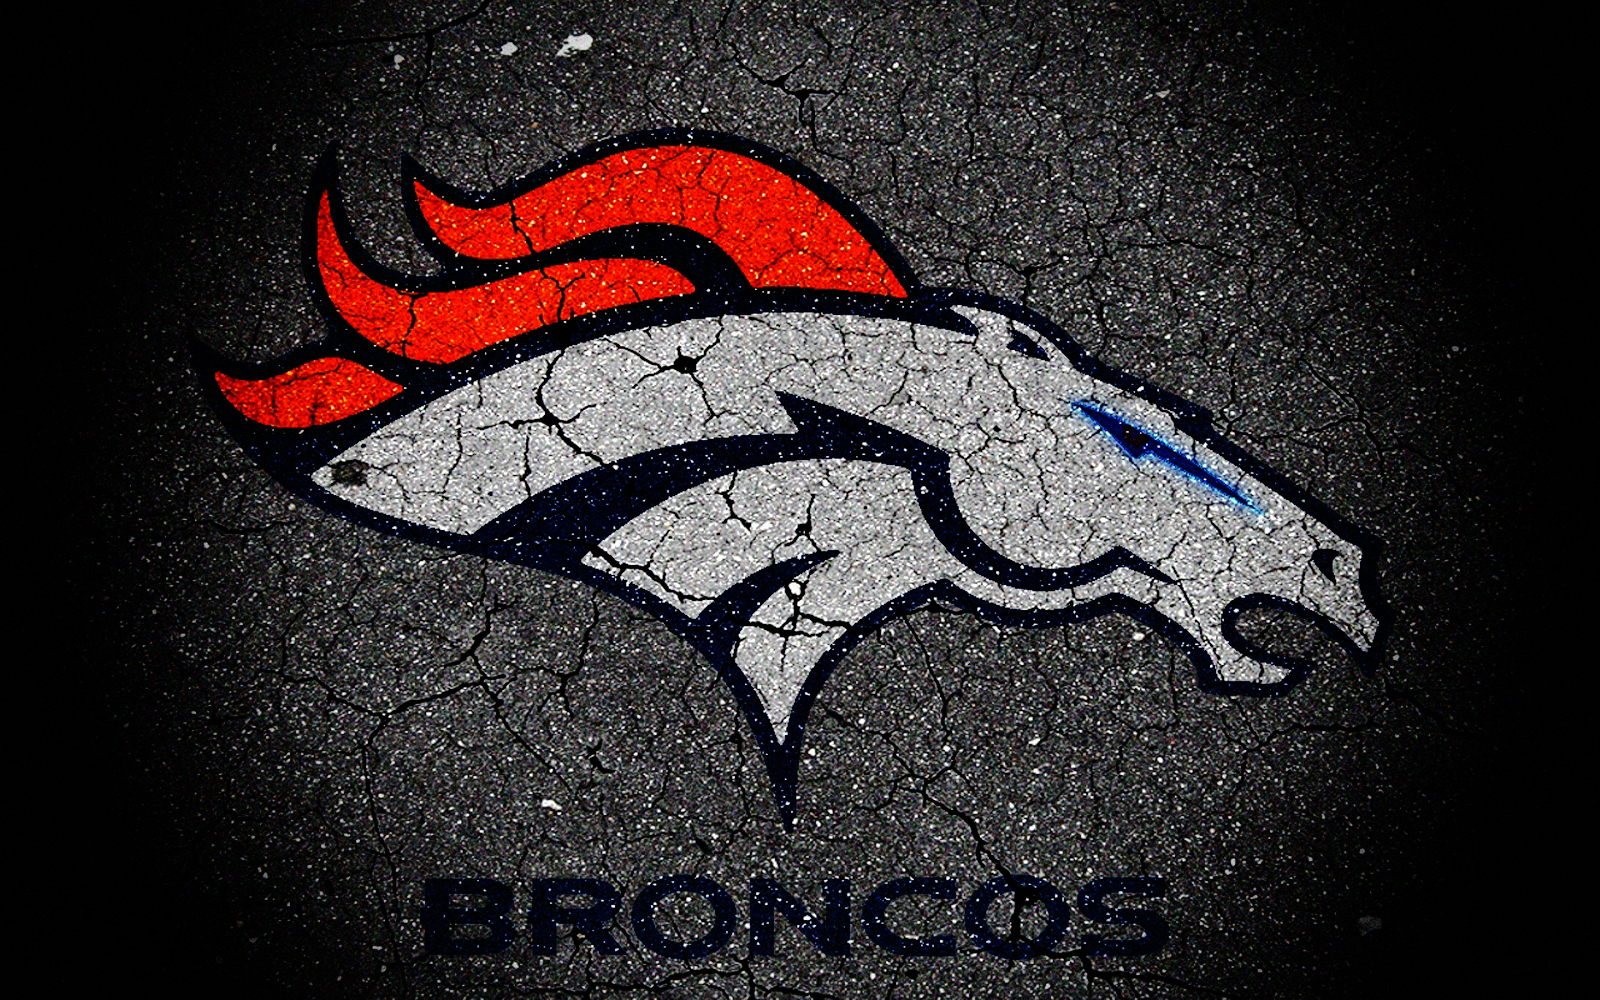 New Bronco Hd Wallpapers Supercardrenaline Free Full Hd